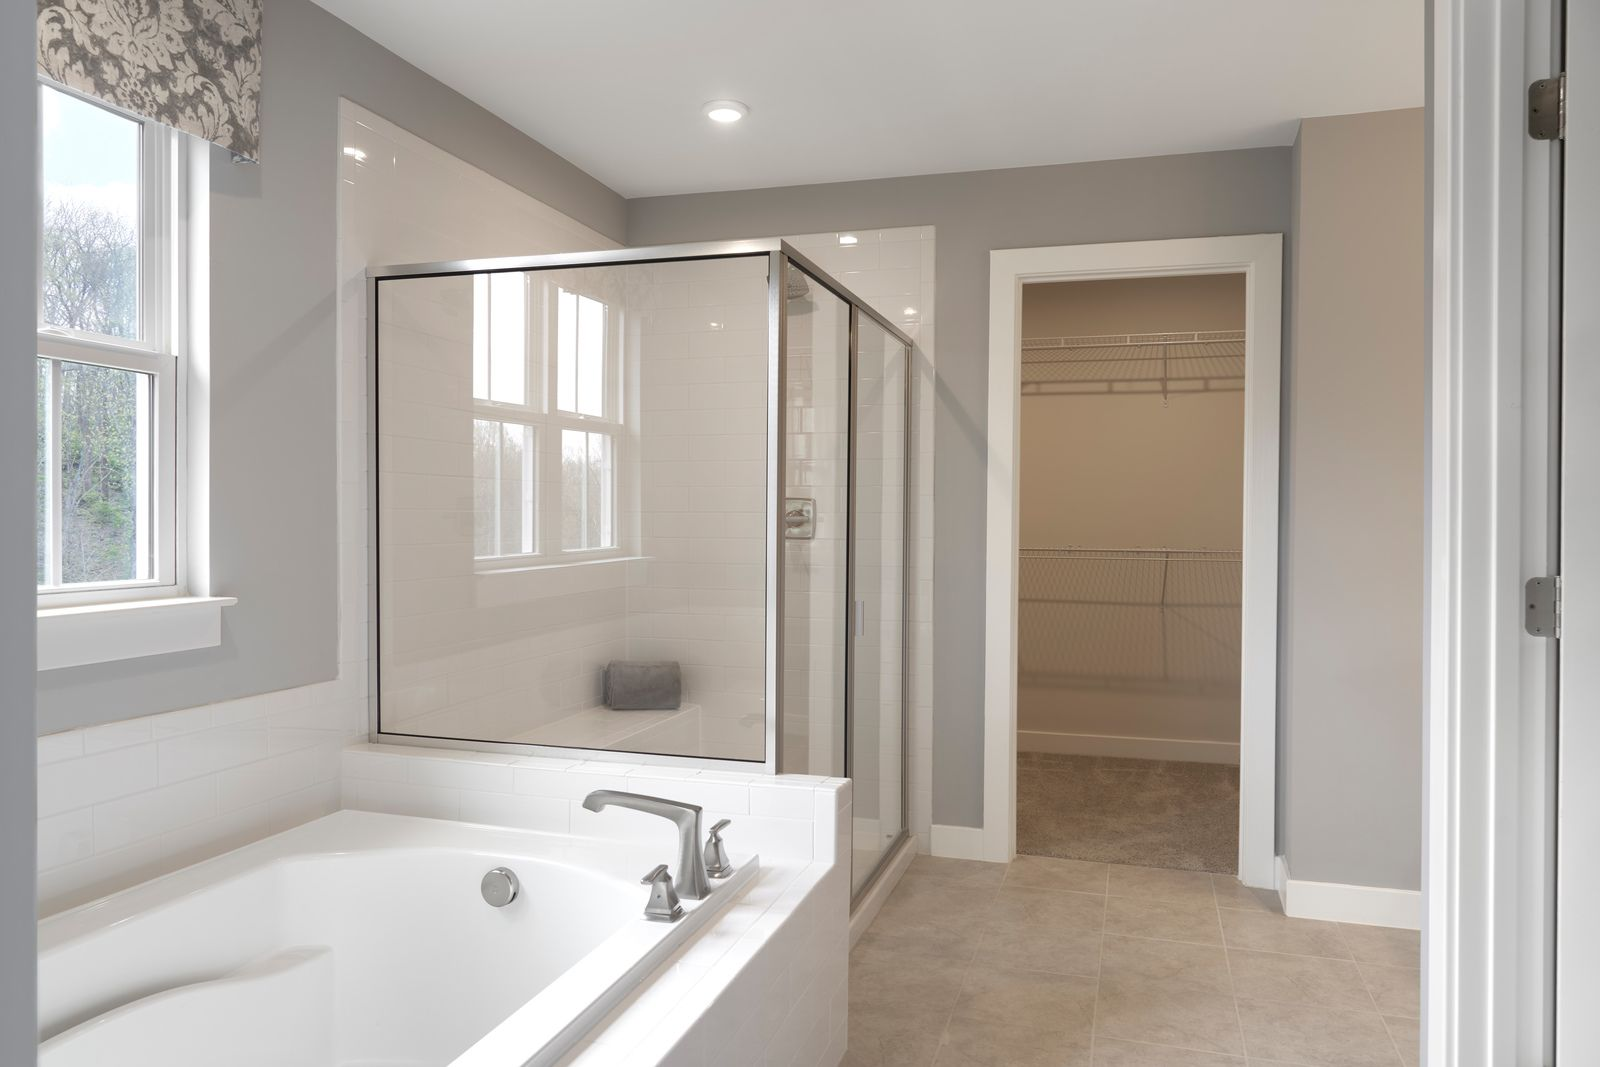 Bathroom featured in the Hudson By Ryan Homes in Washington, VA